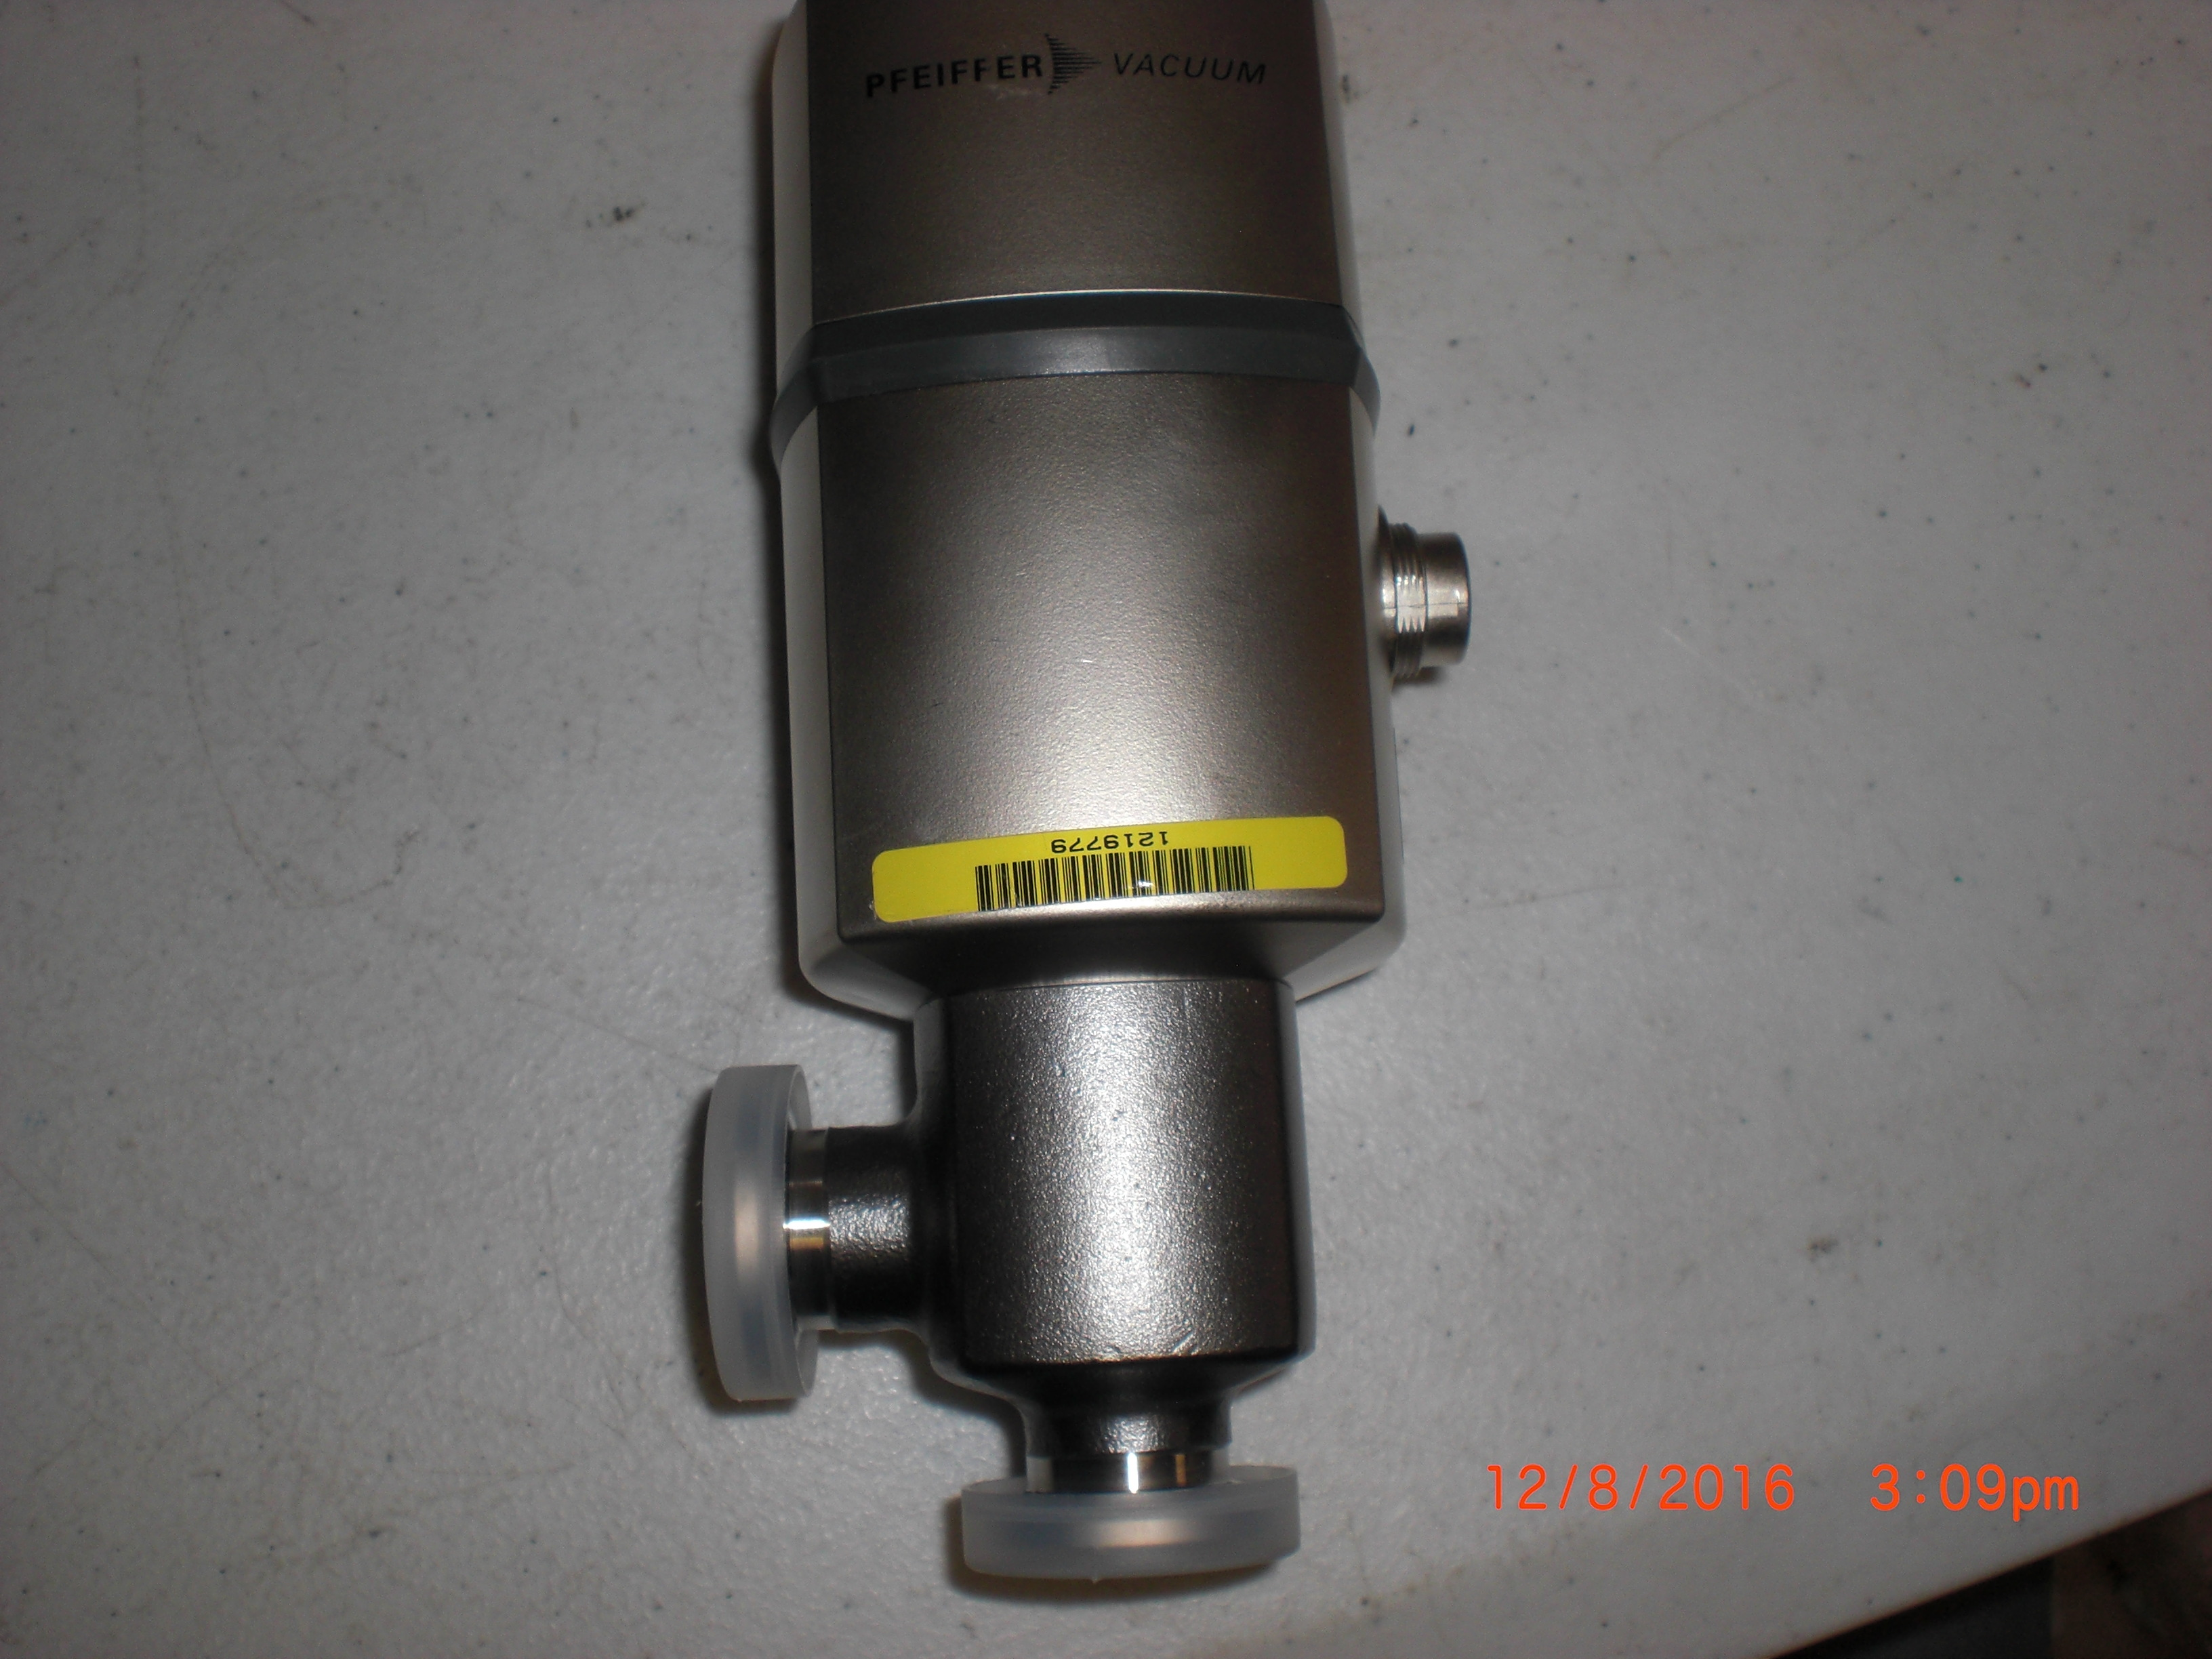 Valve PFEIFFER PF139931 EVR 116, Gas regulating valve NW16,no return - core priced